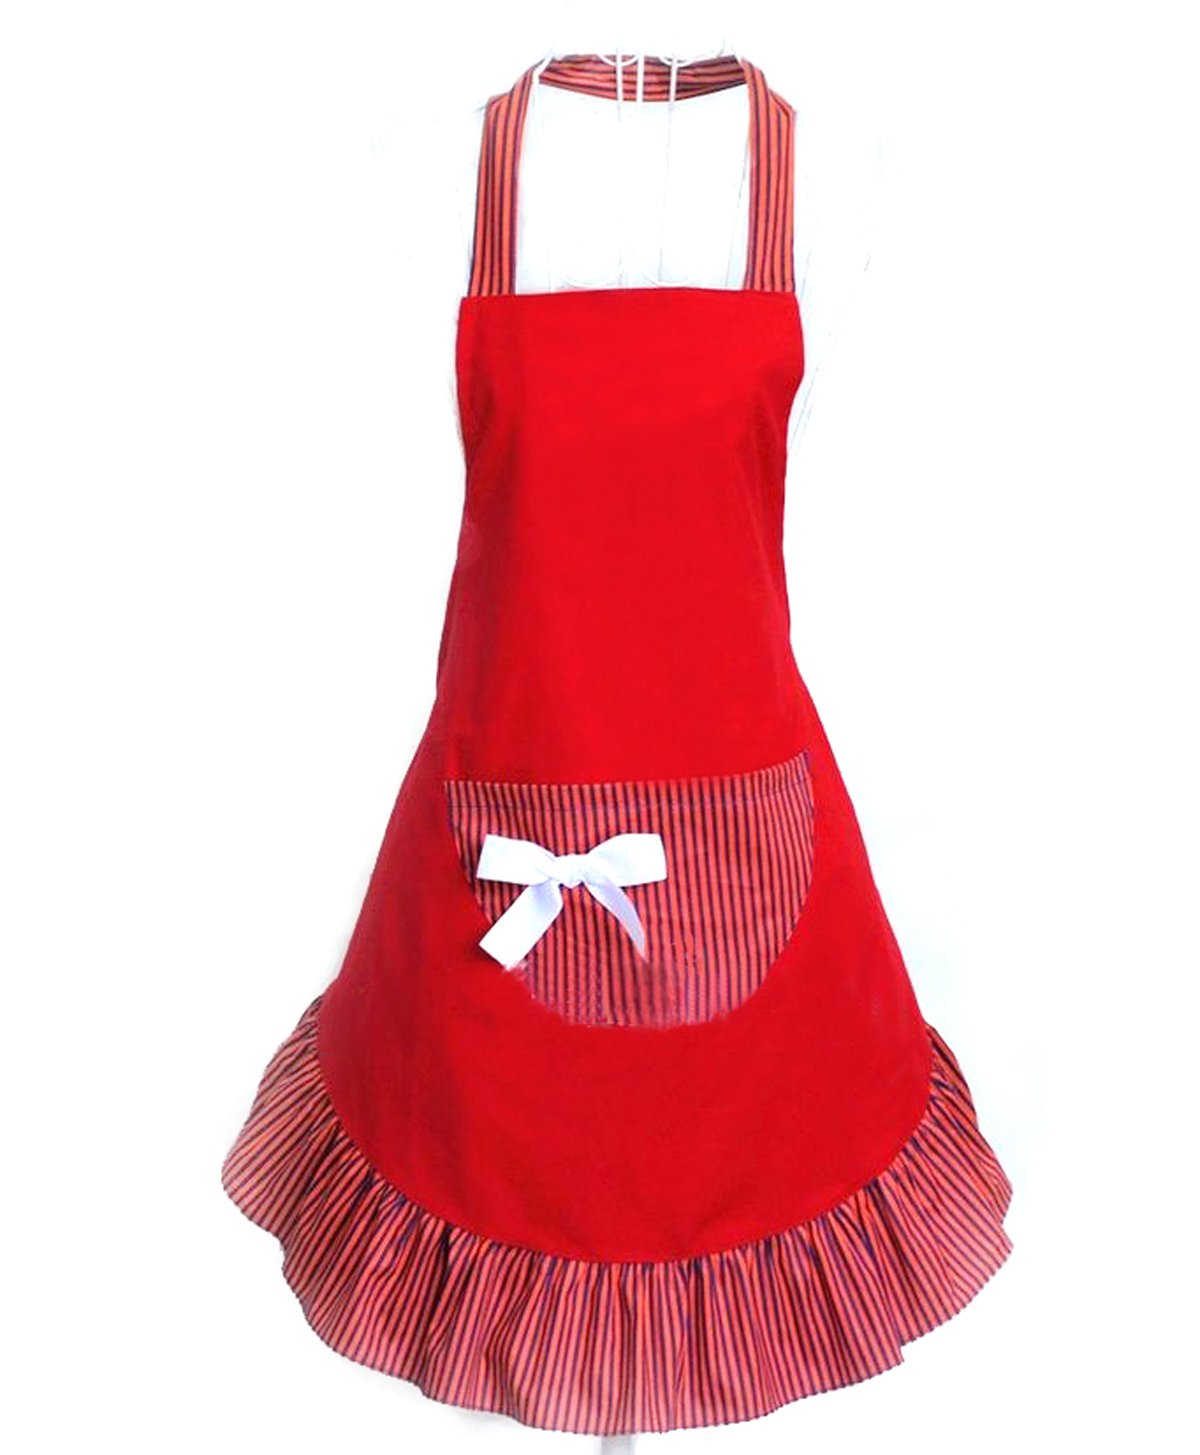 Hyzrz Cute Girls Bowknot Funny Aprons Lady's Kitchen Restaurant Women's Cake Apron with Pocket (Black) COMINHKPR21116